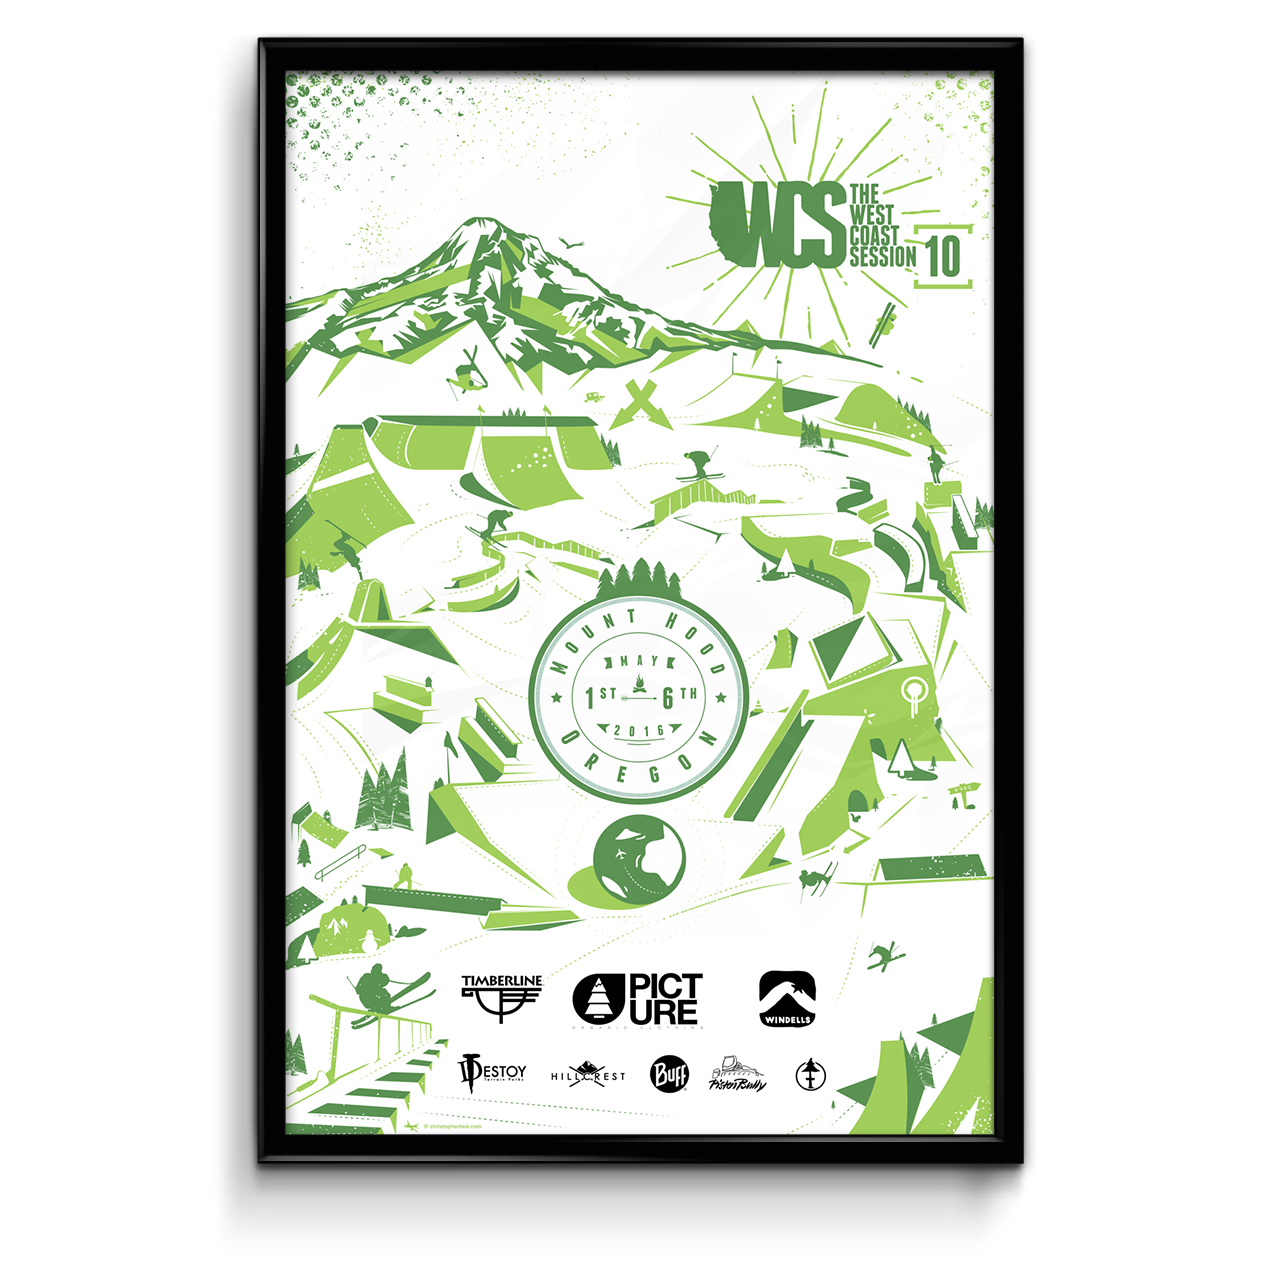 WCS artwork update t-shirt / Buff / poster / web